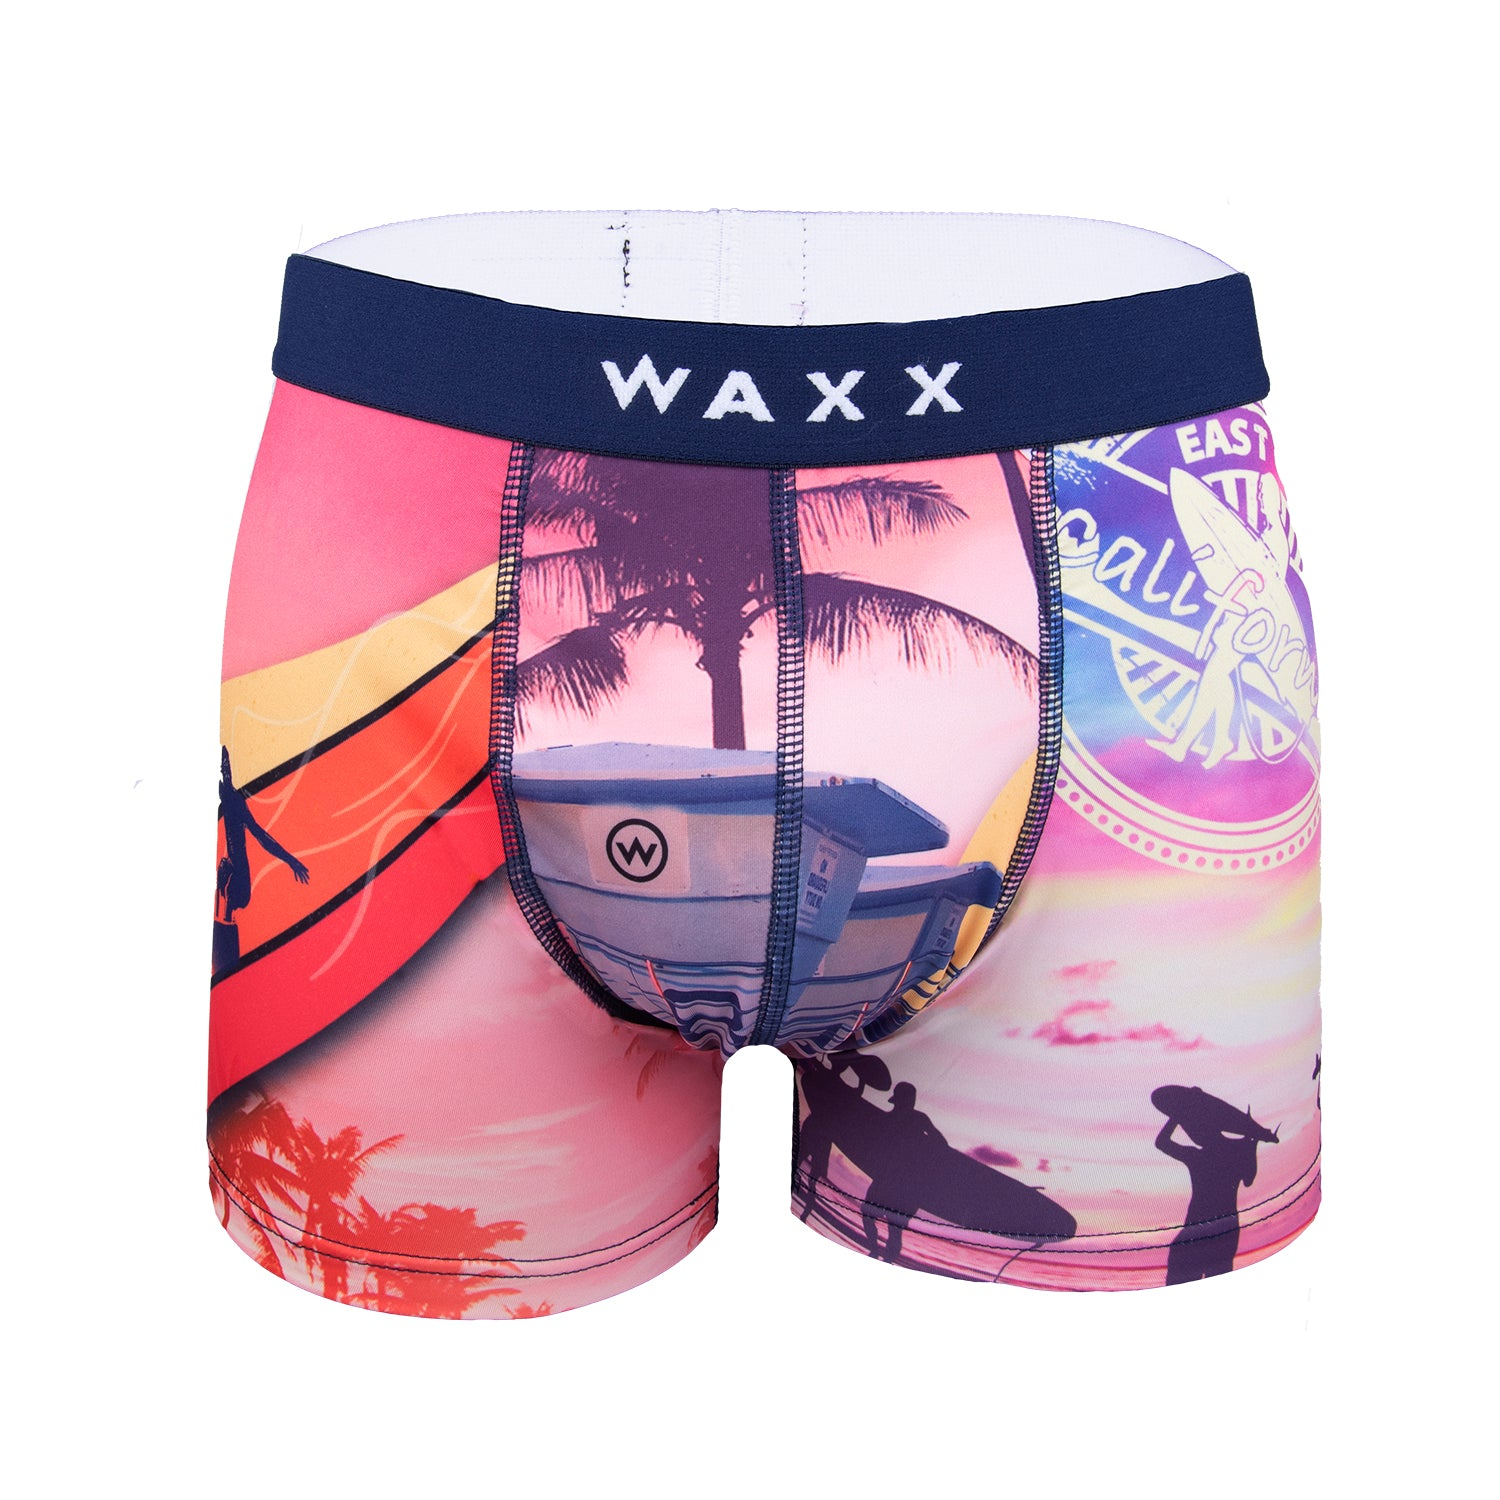 Waxx Men's Trunk Boxer Short Seventies